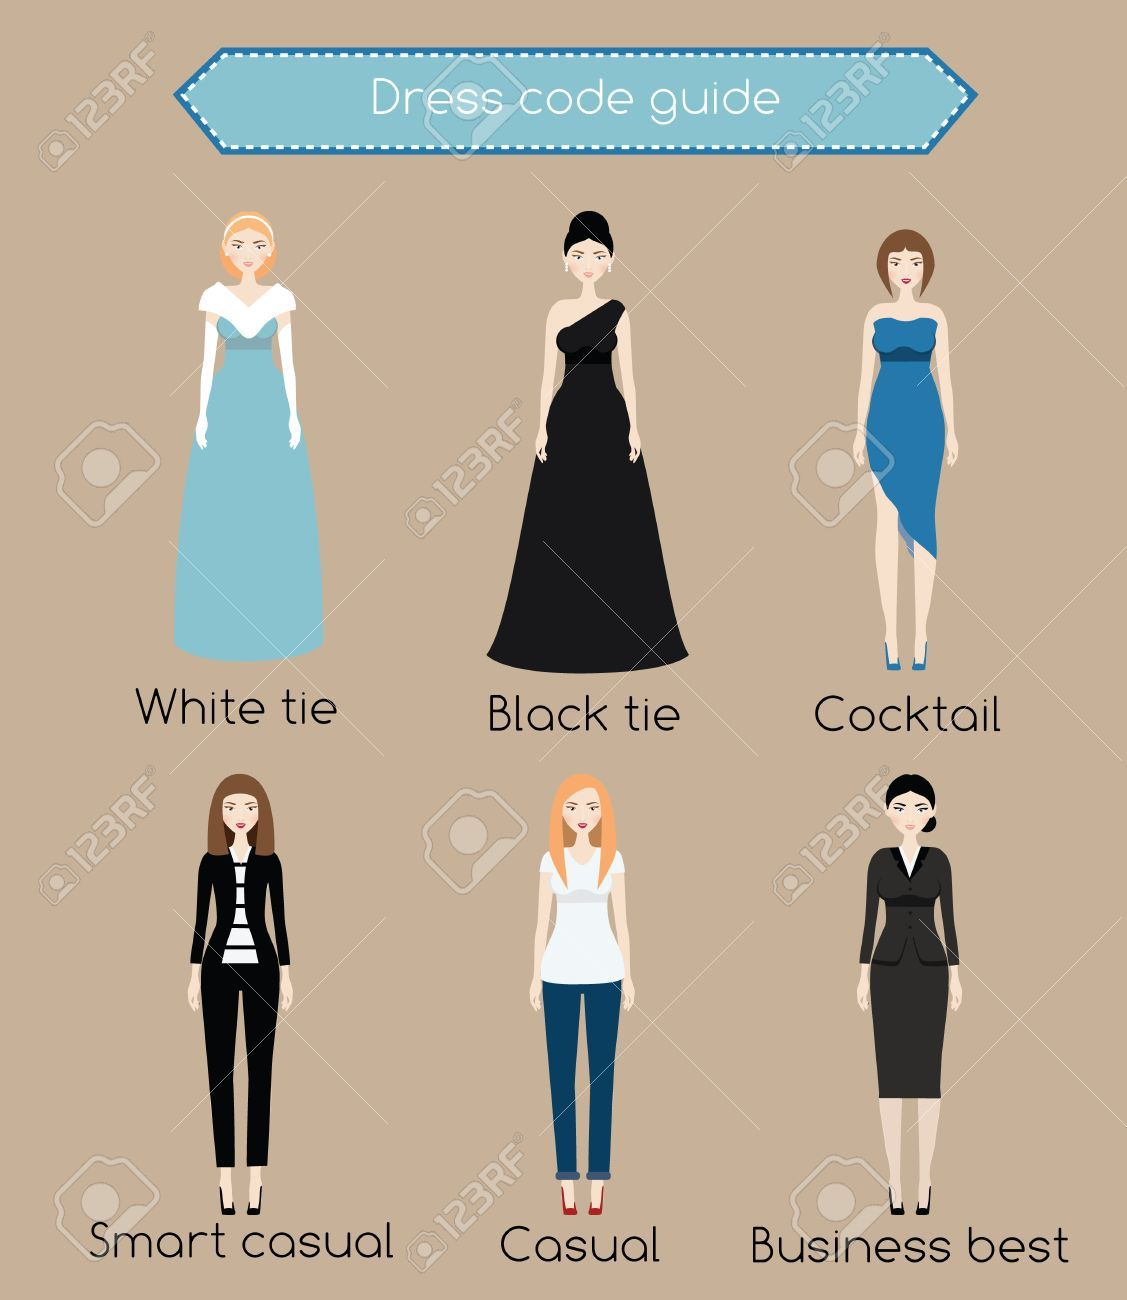 Woman Dress Code Guide Infographic From White Tie To Business Dress Codes Dress Code Guide Black Tie Dress Code Women